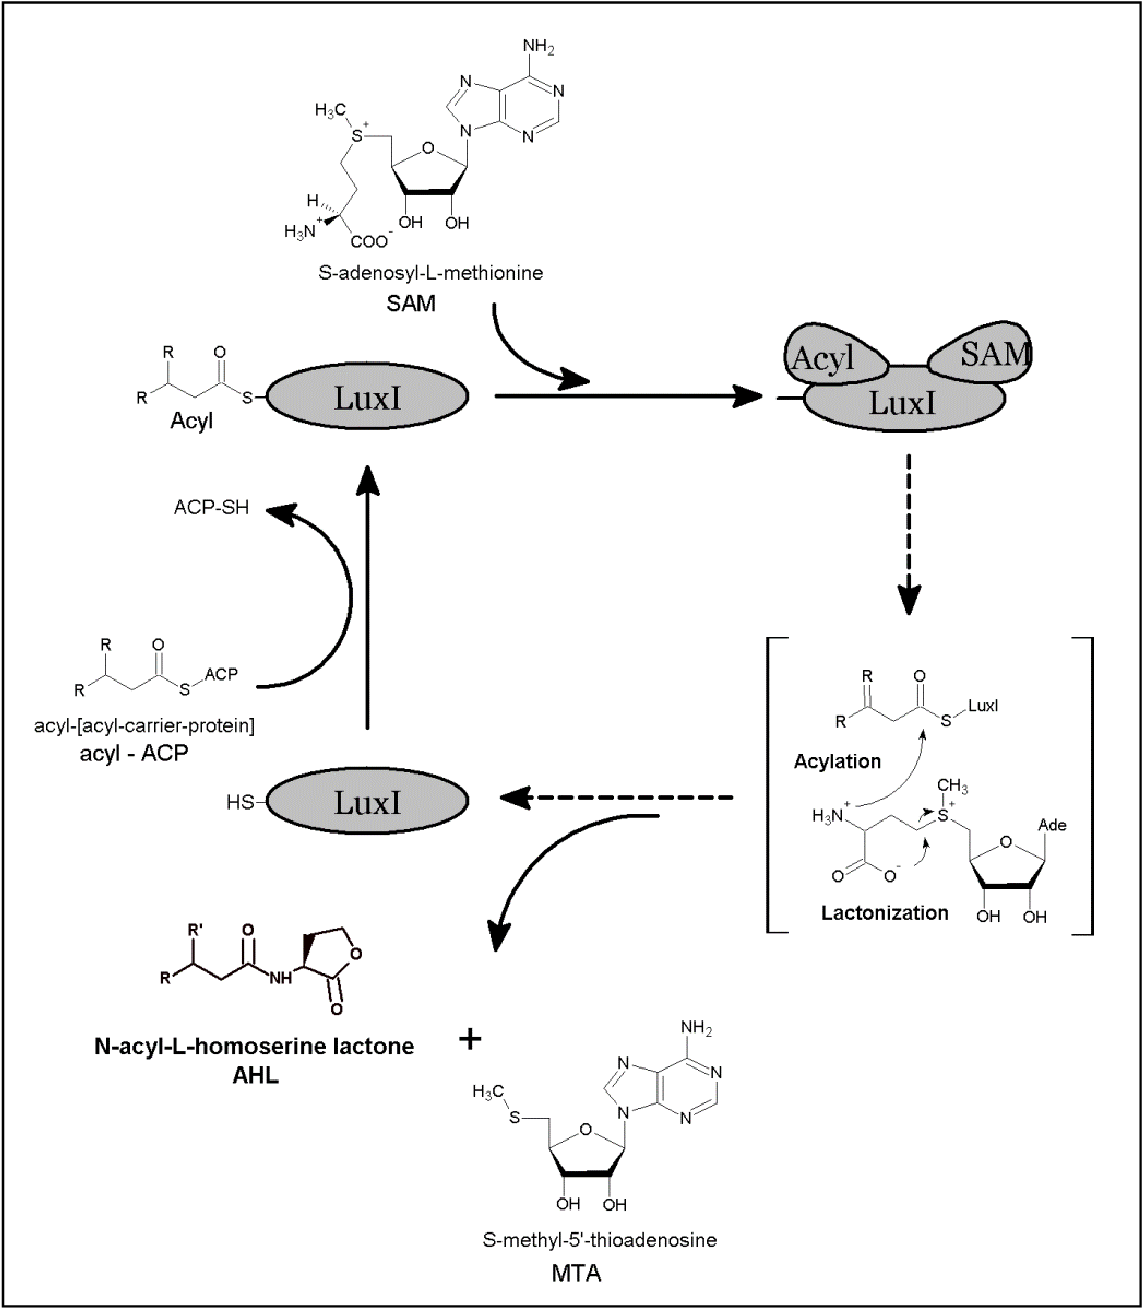 Figure 2. Enzymatic mechanism of AHL synthesis by LuxI. The reaction mechanism is sequentially ordered. The initial step is binding of acyl-ACP and SAM. ACP is released followed by amide formation between the amino group of SAM and the acyl group of the fatty acid. Lactonization of the homoserine lactone ring occurs with the subsequent release of the AHL and MTA in the final step.